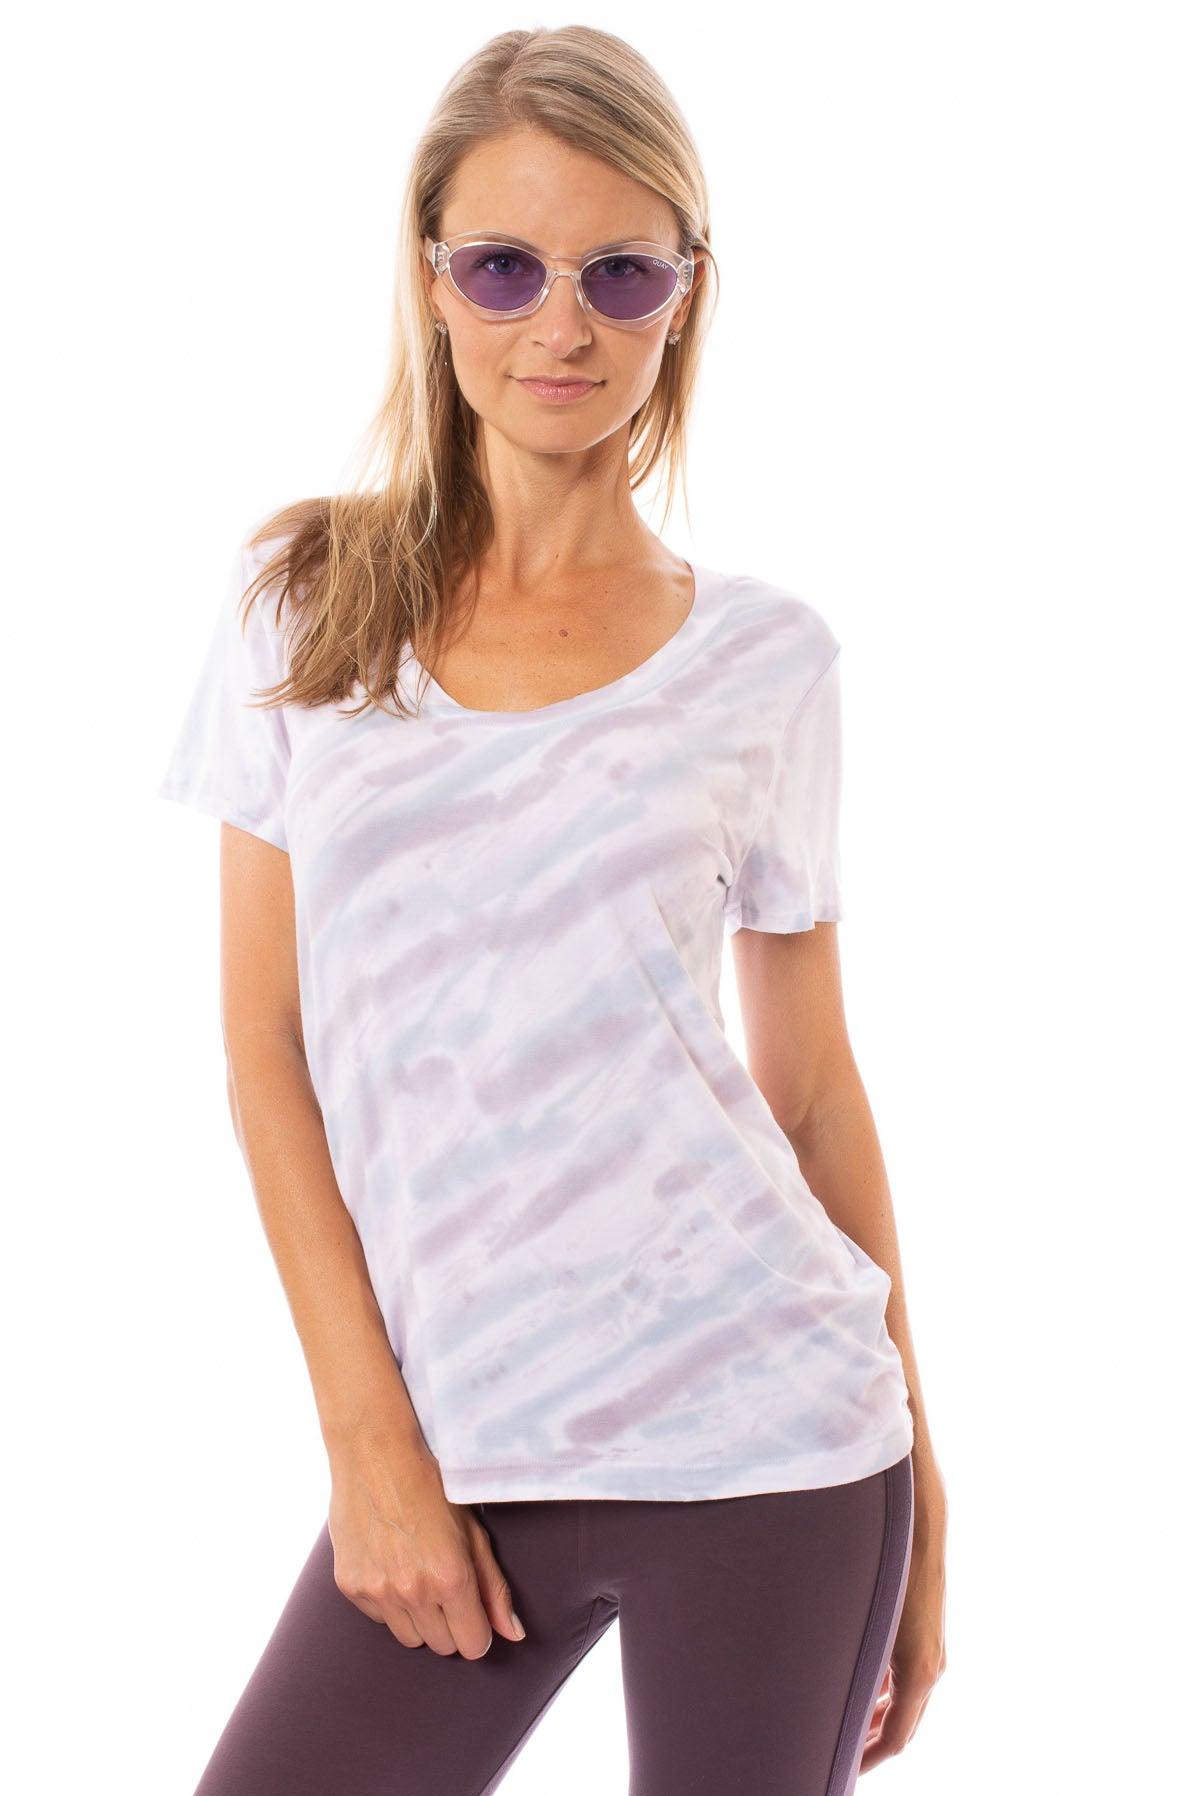 Hard Tail Forever - Basic Scoop Tee (SIR-53, Tie-Dye DSW4)